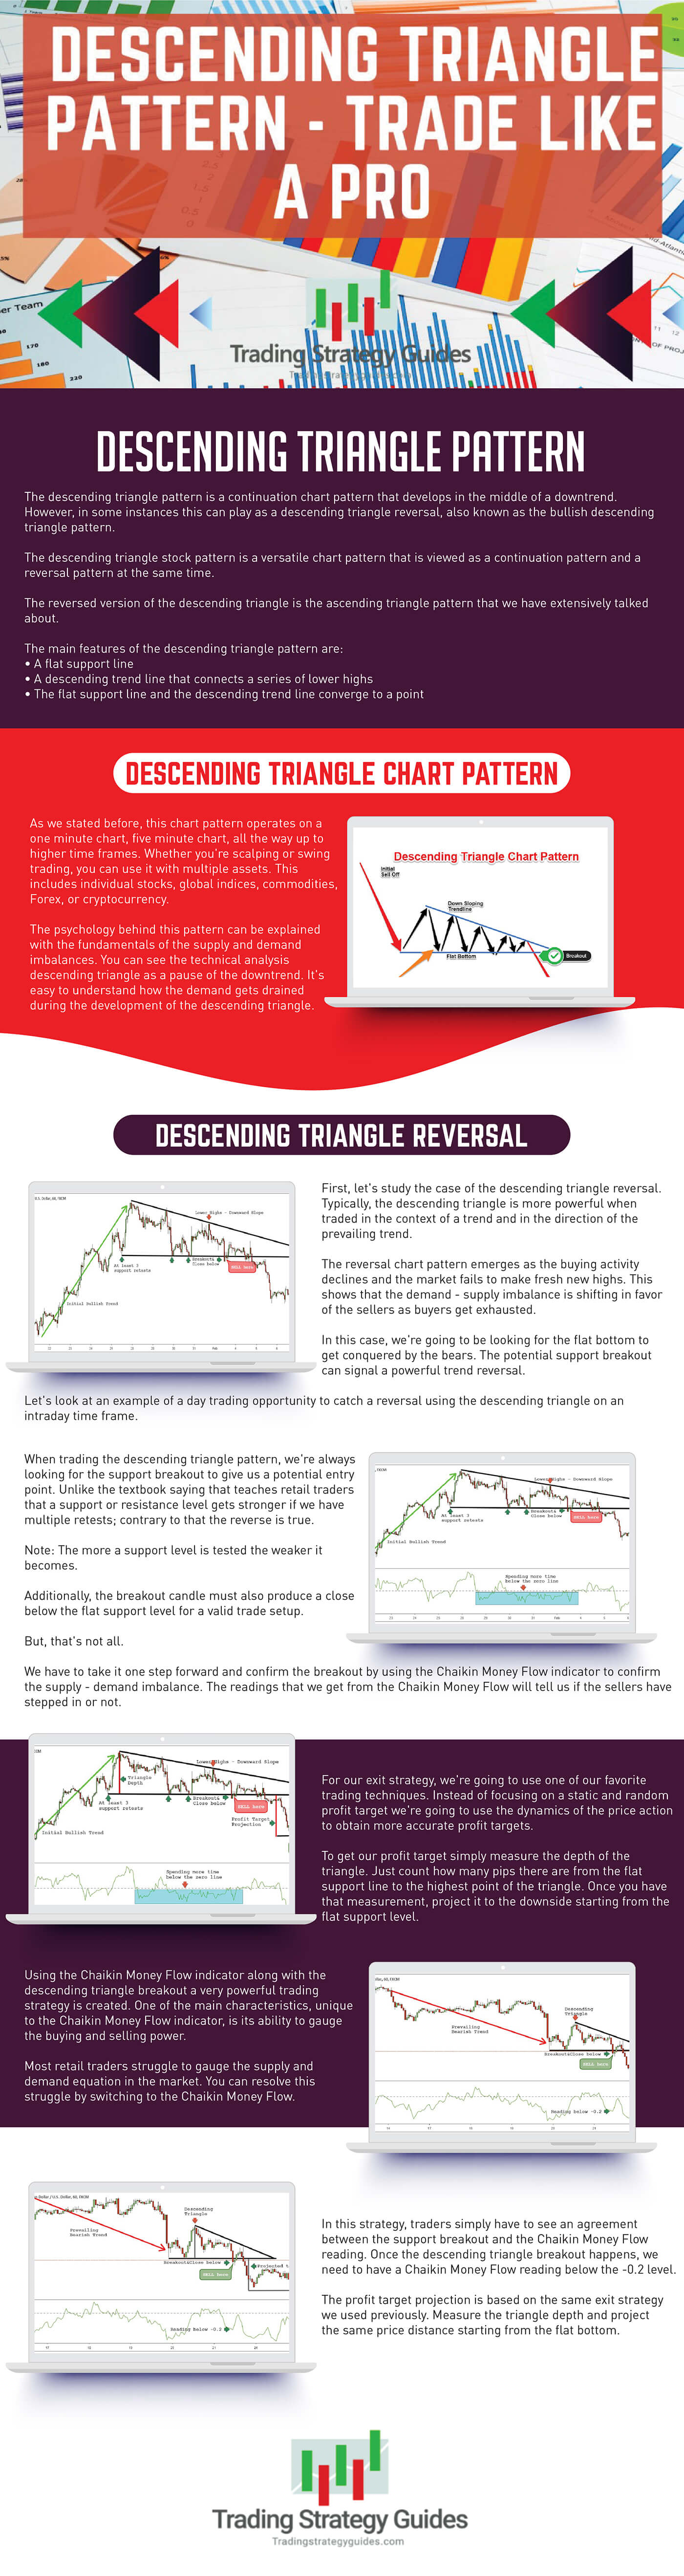 Descending Triangle Pattern infographic guide